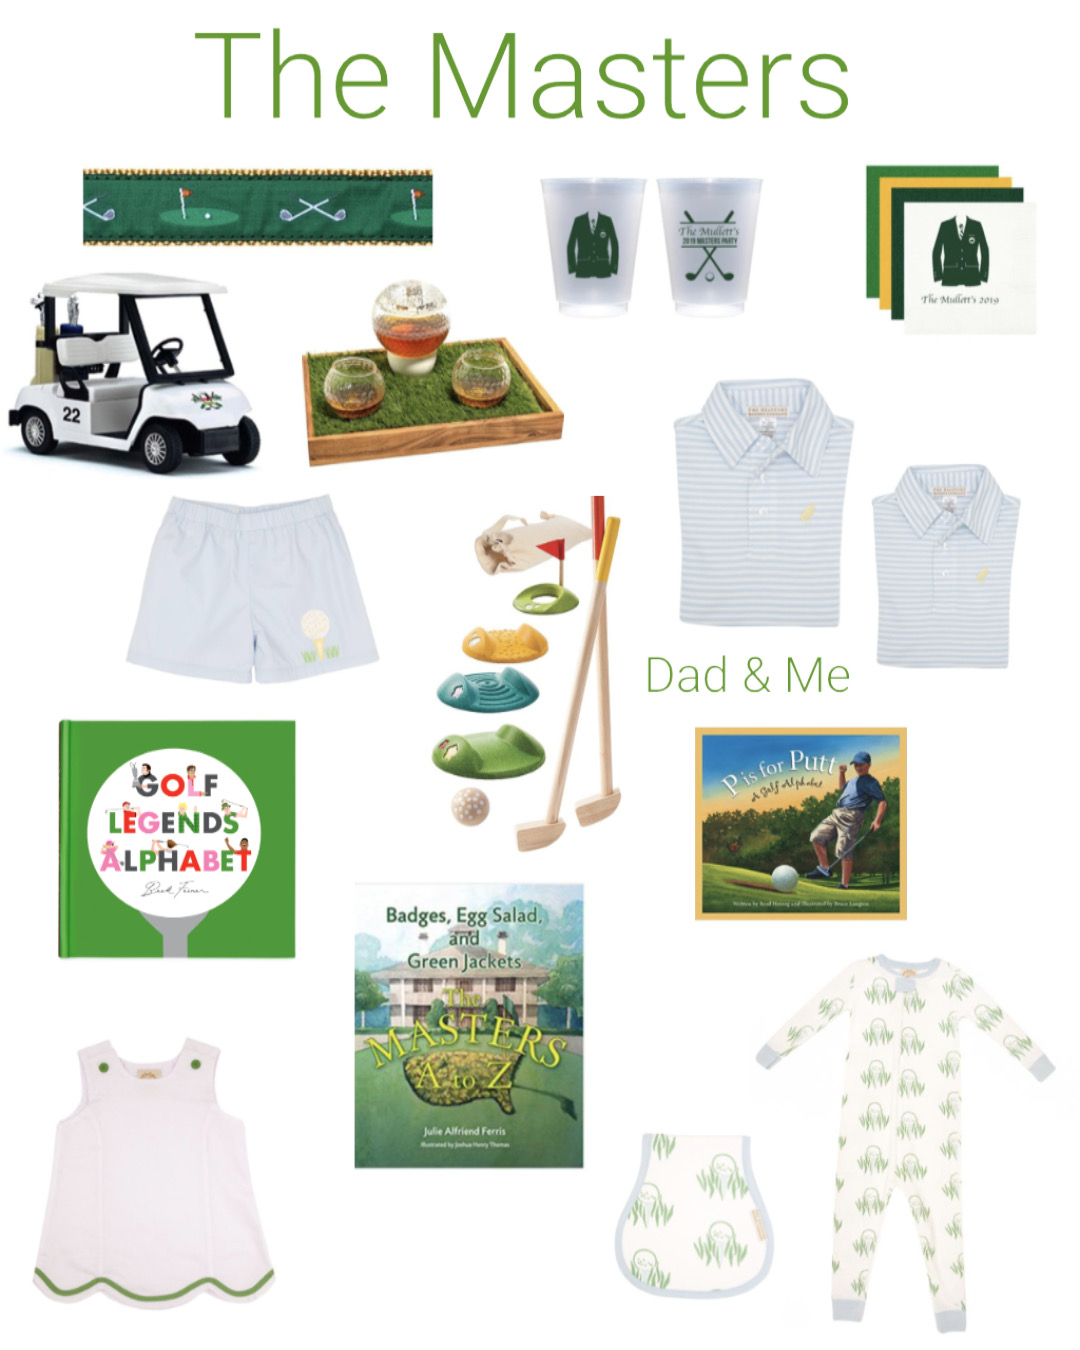 The Masters Golf Gear!